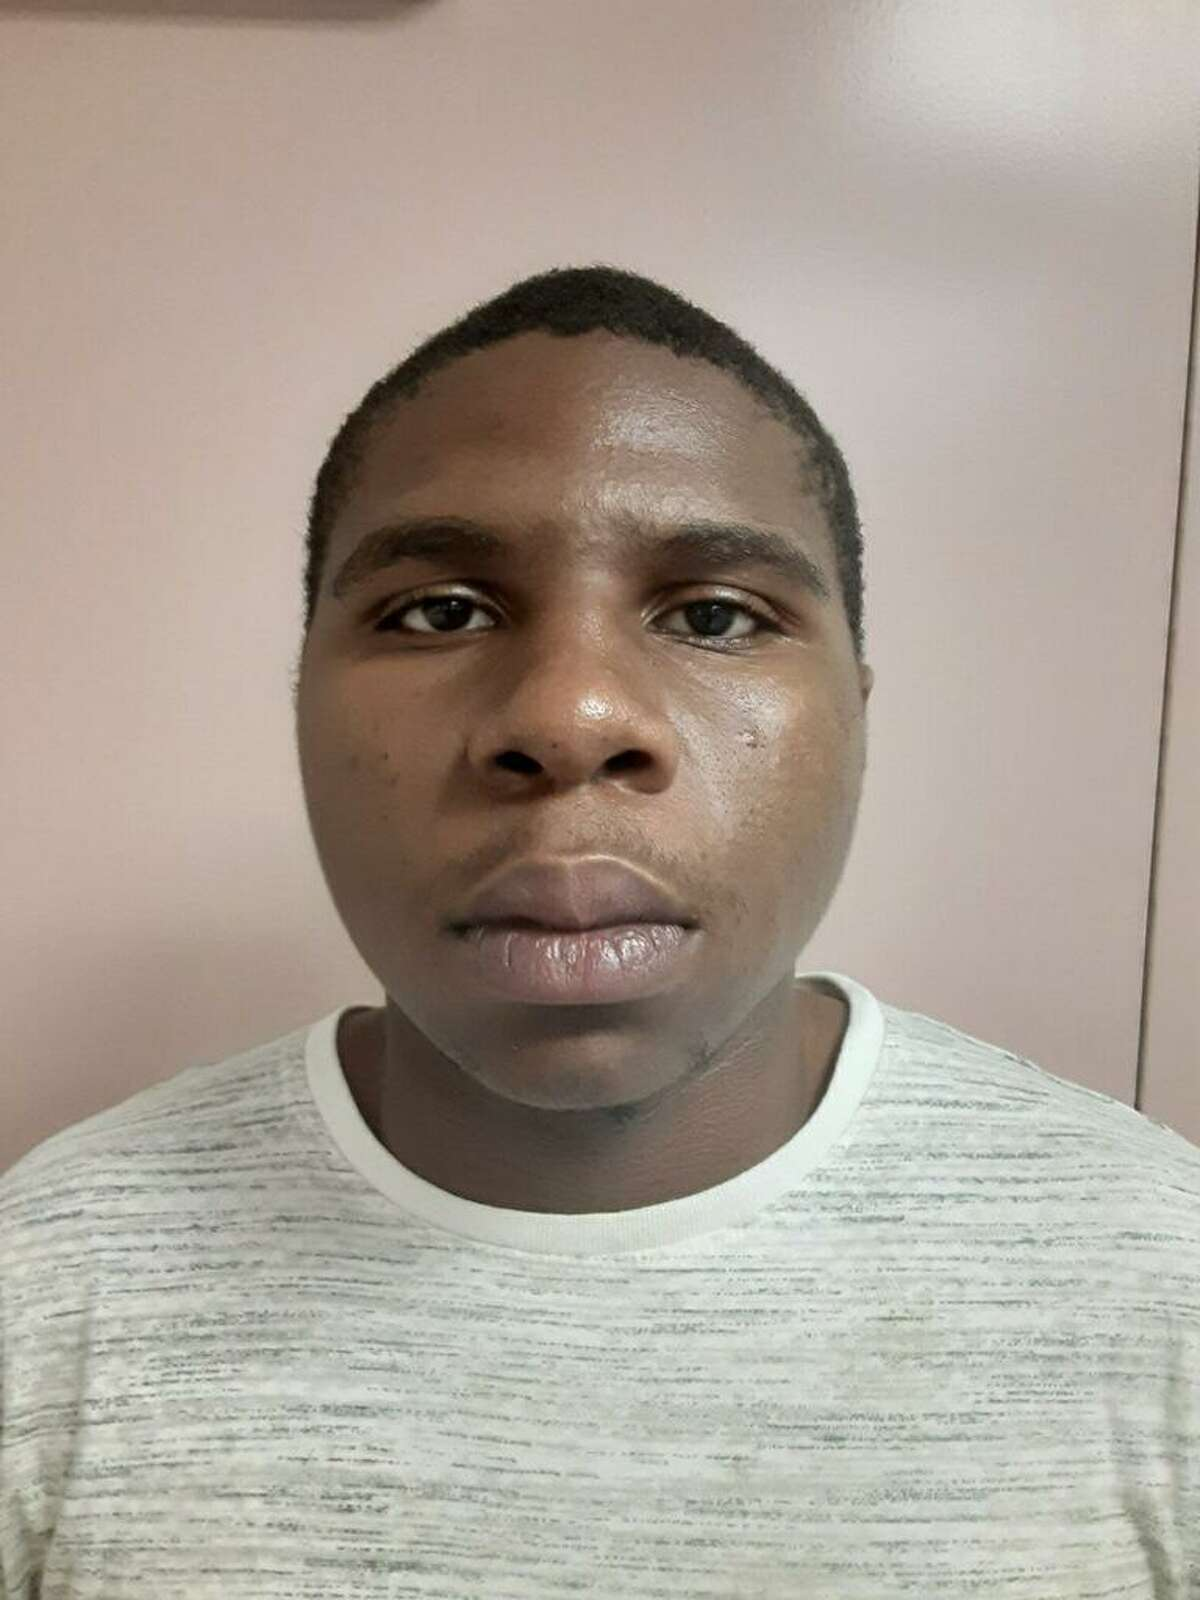 Makel Charles Bryant-Eason, 19, of Rosenberg was arrested on Friday, June 11, and has been charged in connection with the murder of Carlos Medina, 56, of Richmond on April 15, 2021.